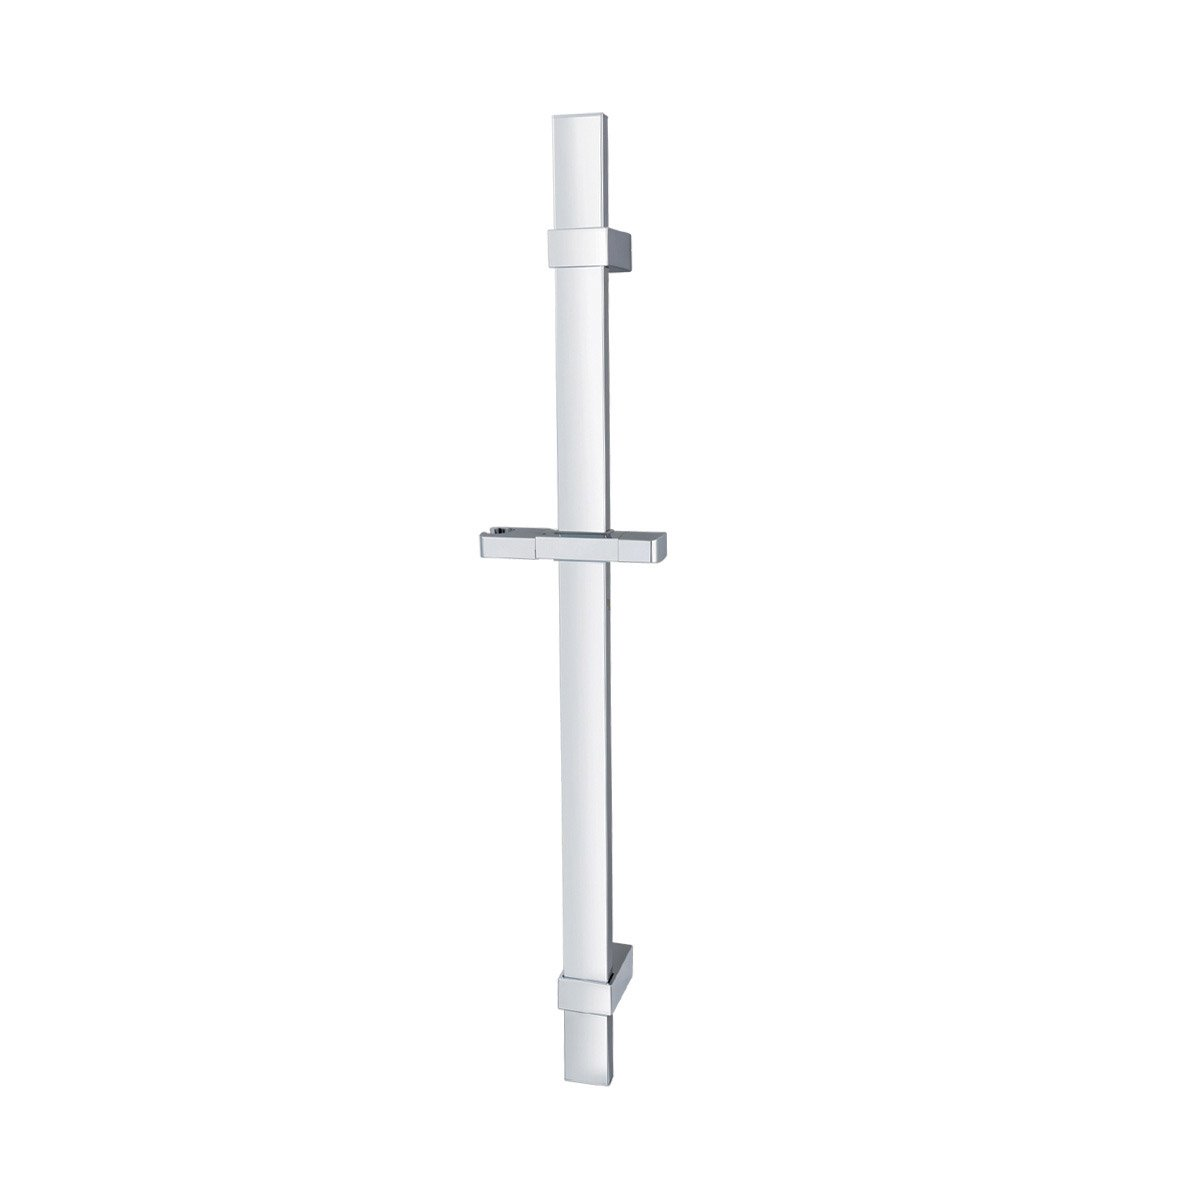 Barre de douche chrome sensea lim leroy merlin - Barre de douche leroy merlin ...